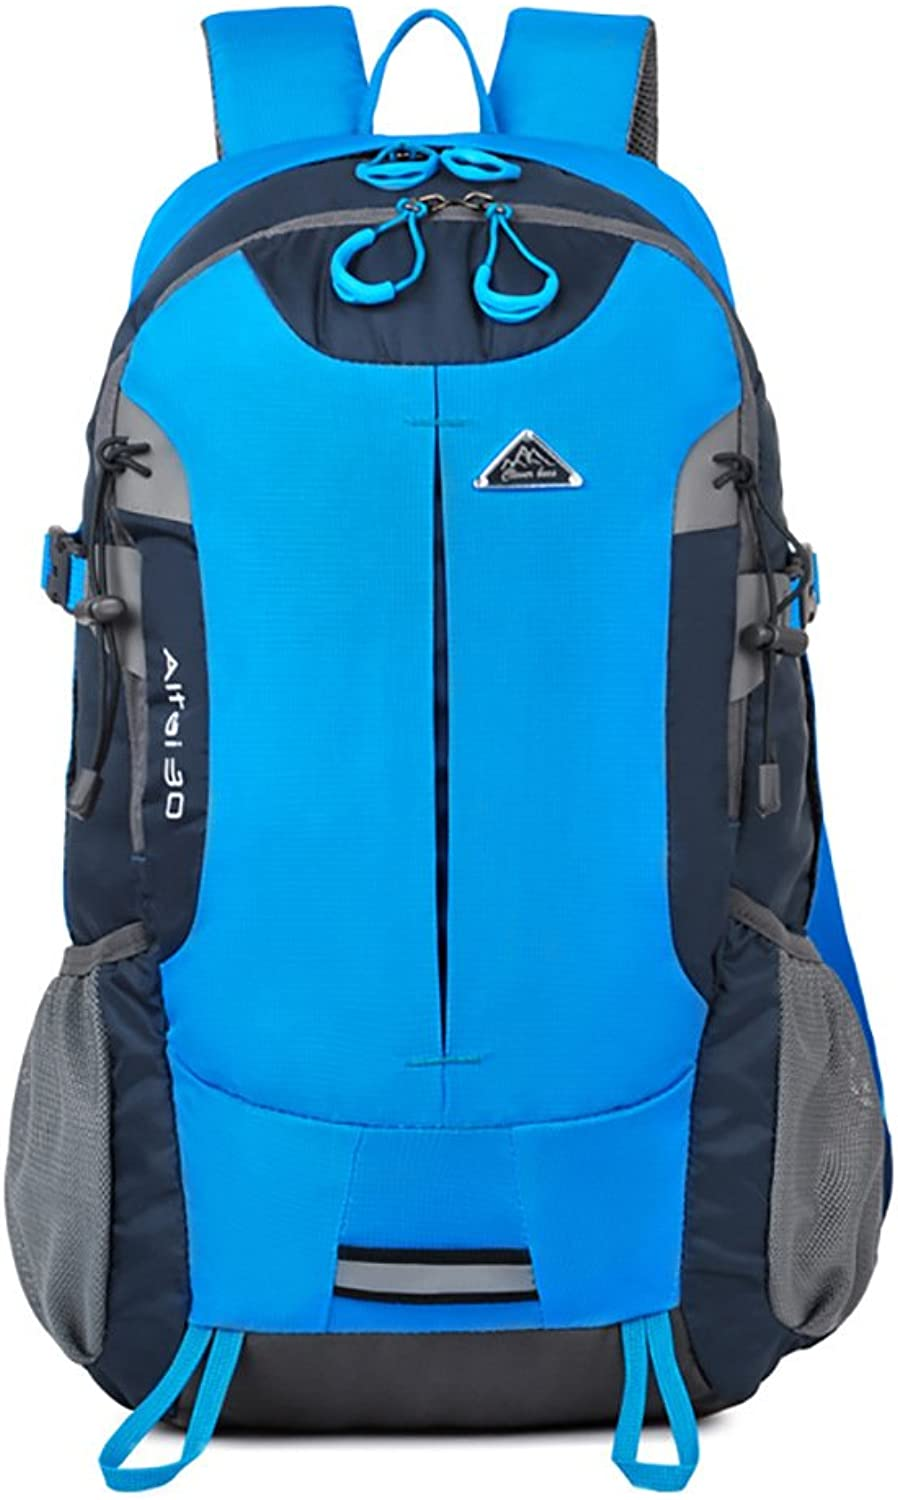 Vitalite2035L WaterResistant Outdoor Sports Climbing Hiking Backpack for Travel Hiking Climbing